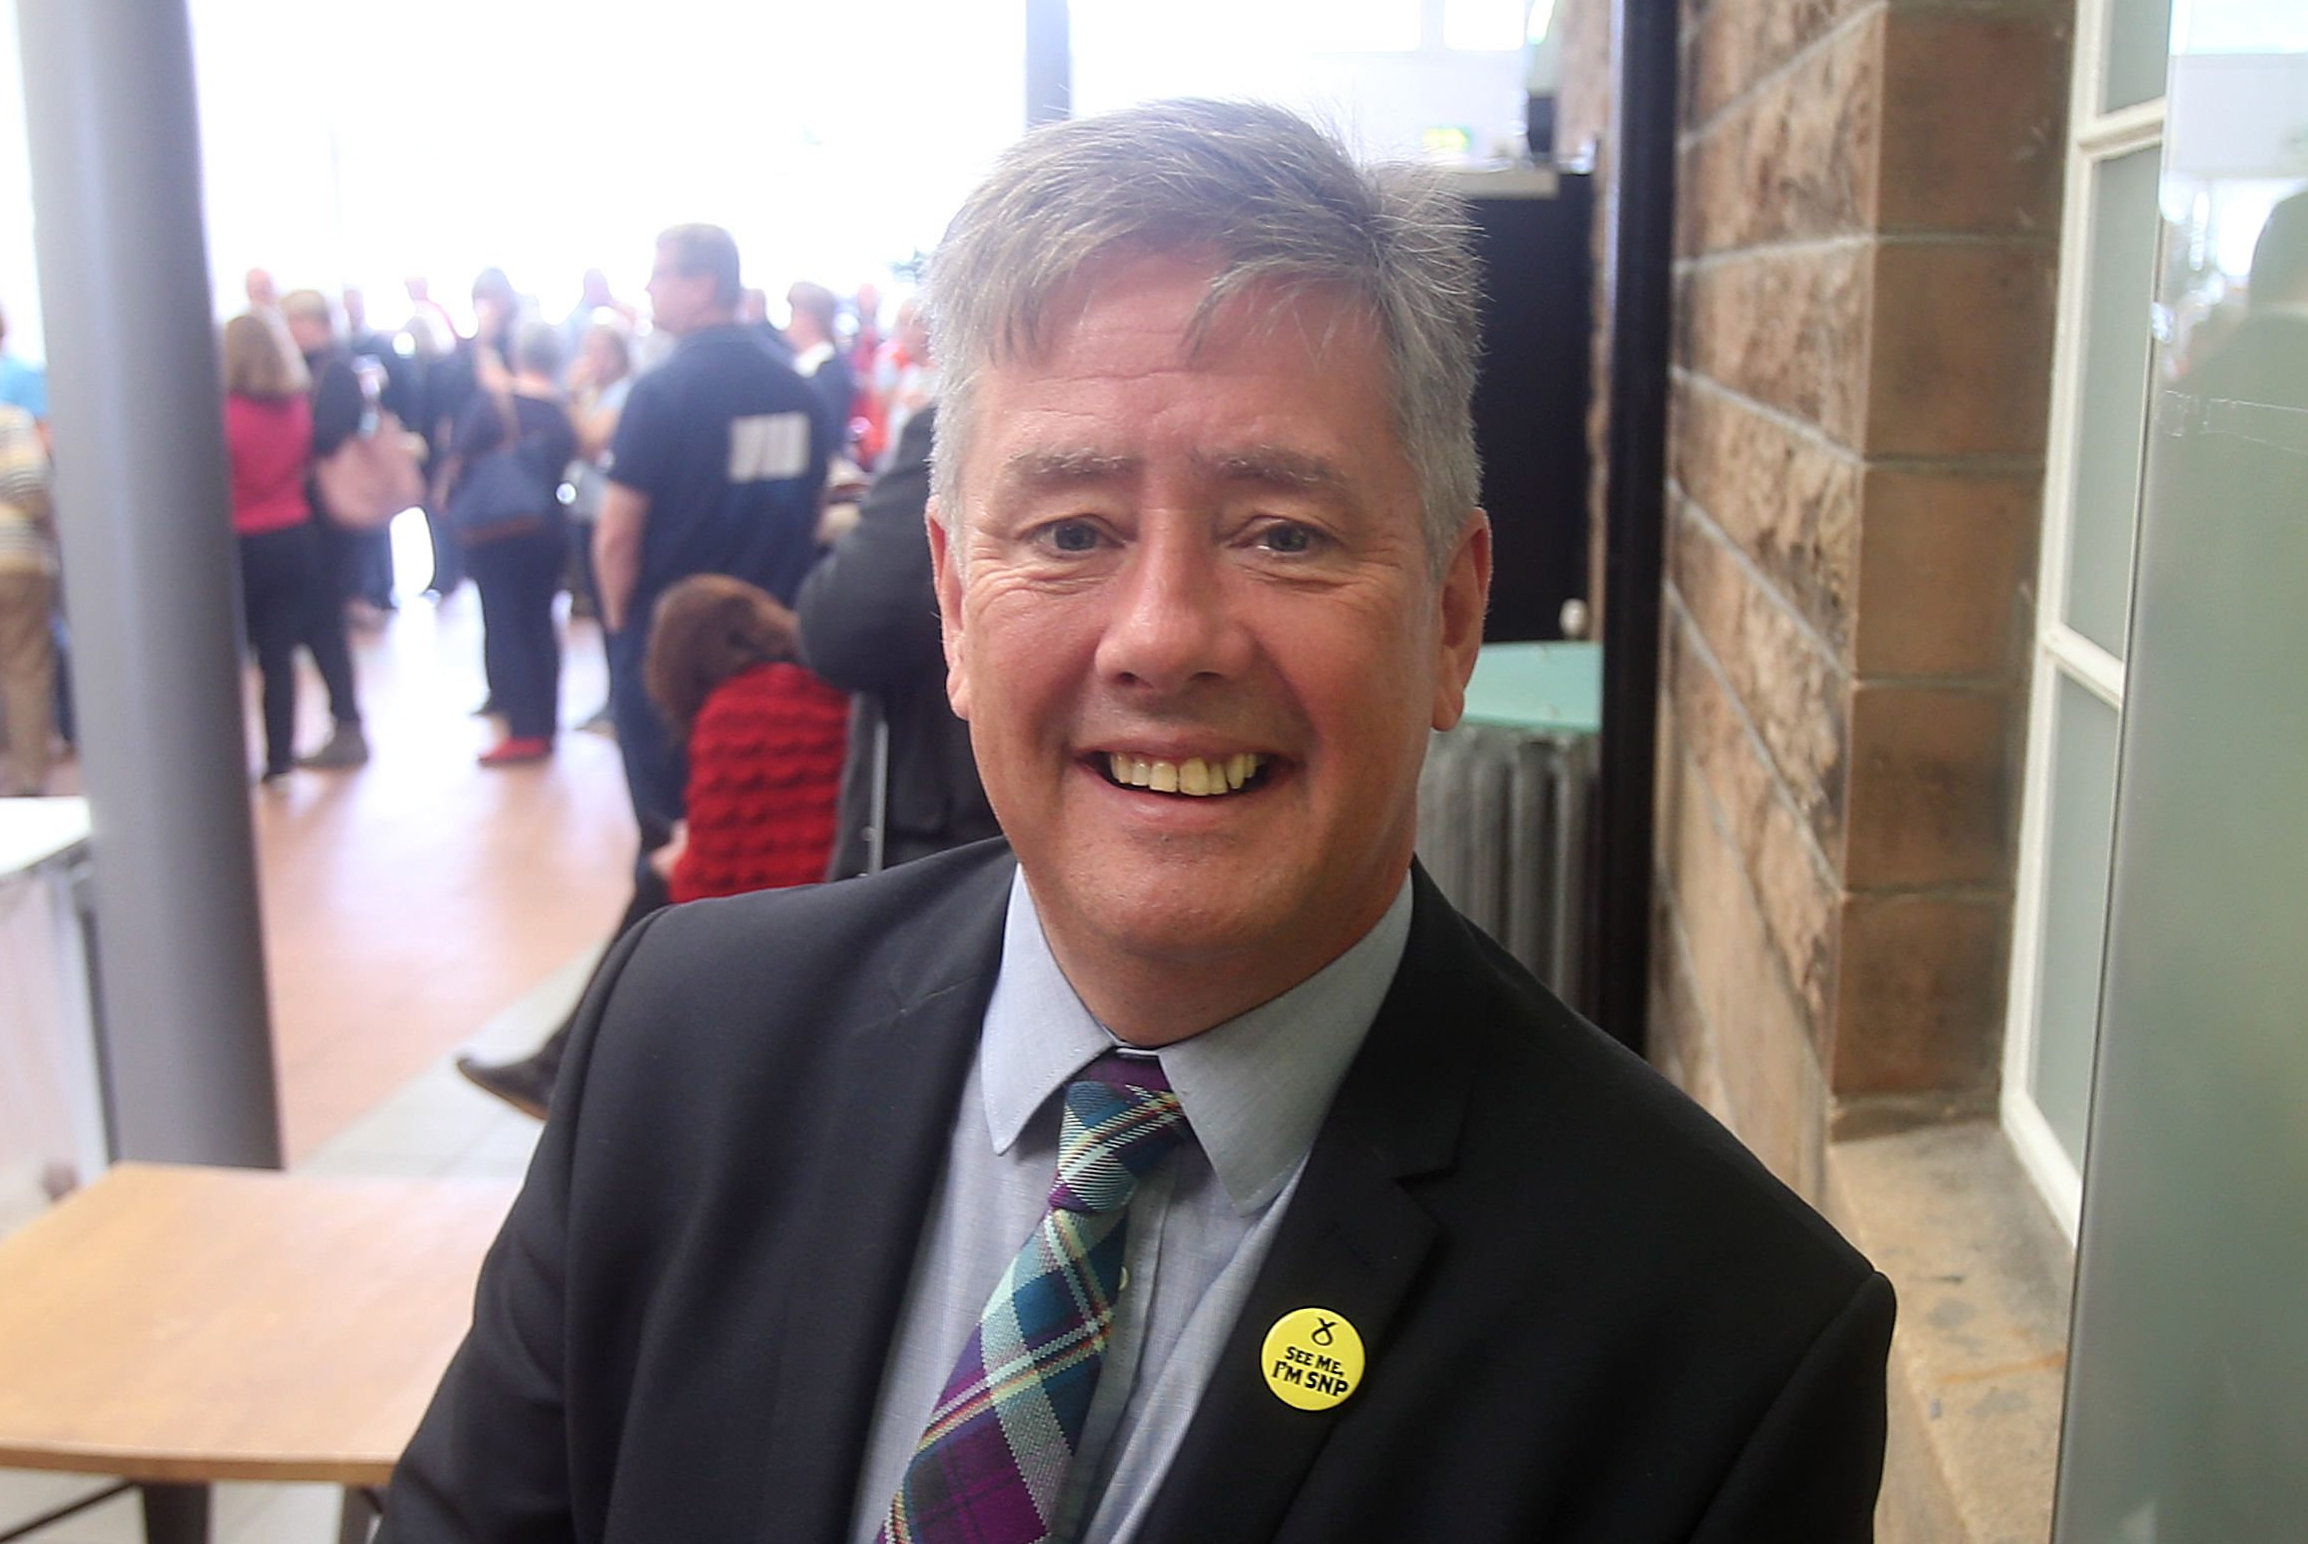 The SNP's Keith Brown is in touch with what's going on at ground level